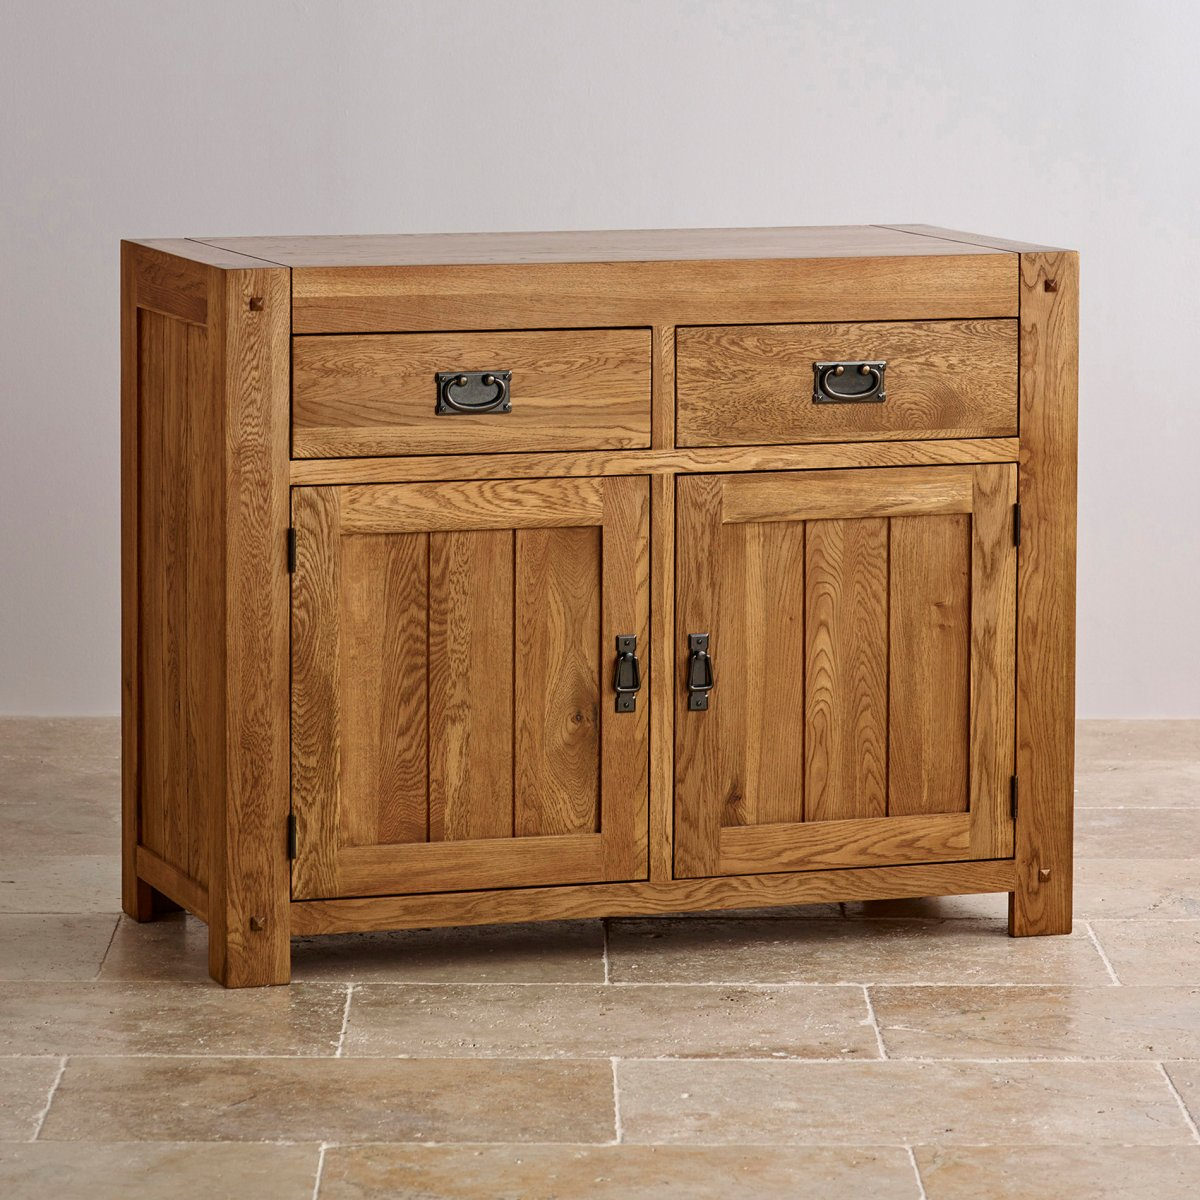 Quercus small sideboard in rustic oak oak furniture land for Oak furniture land